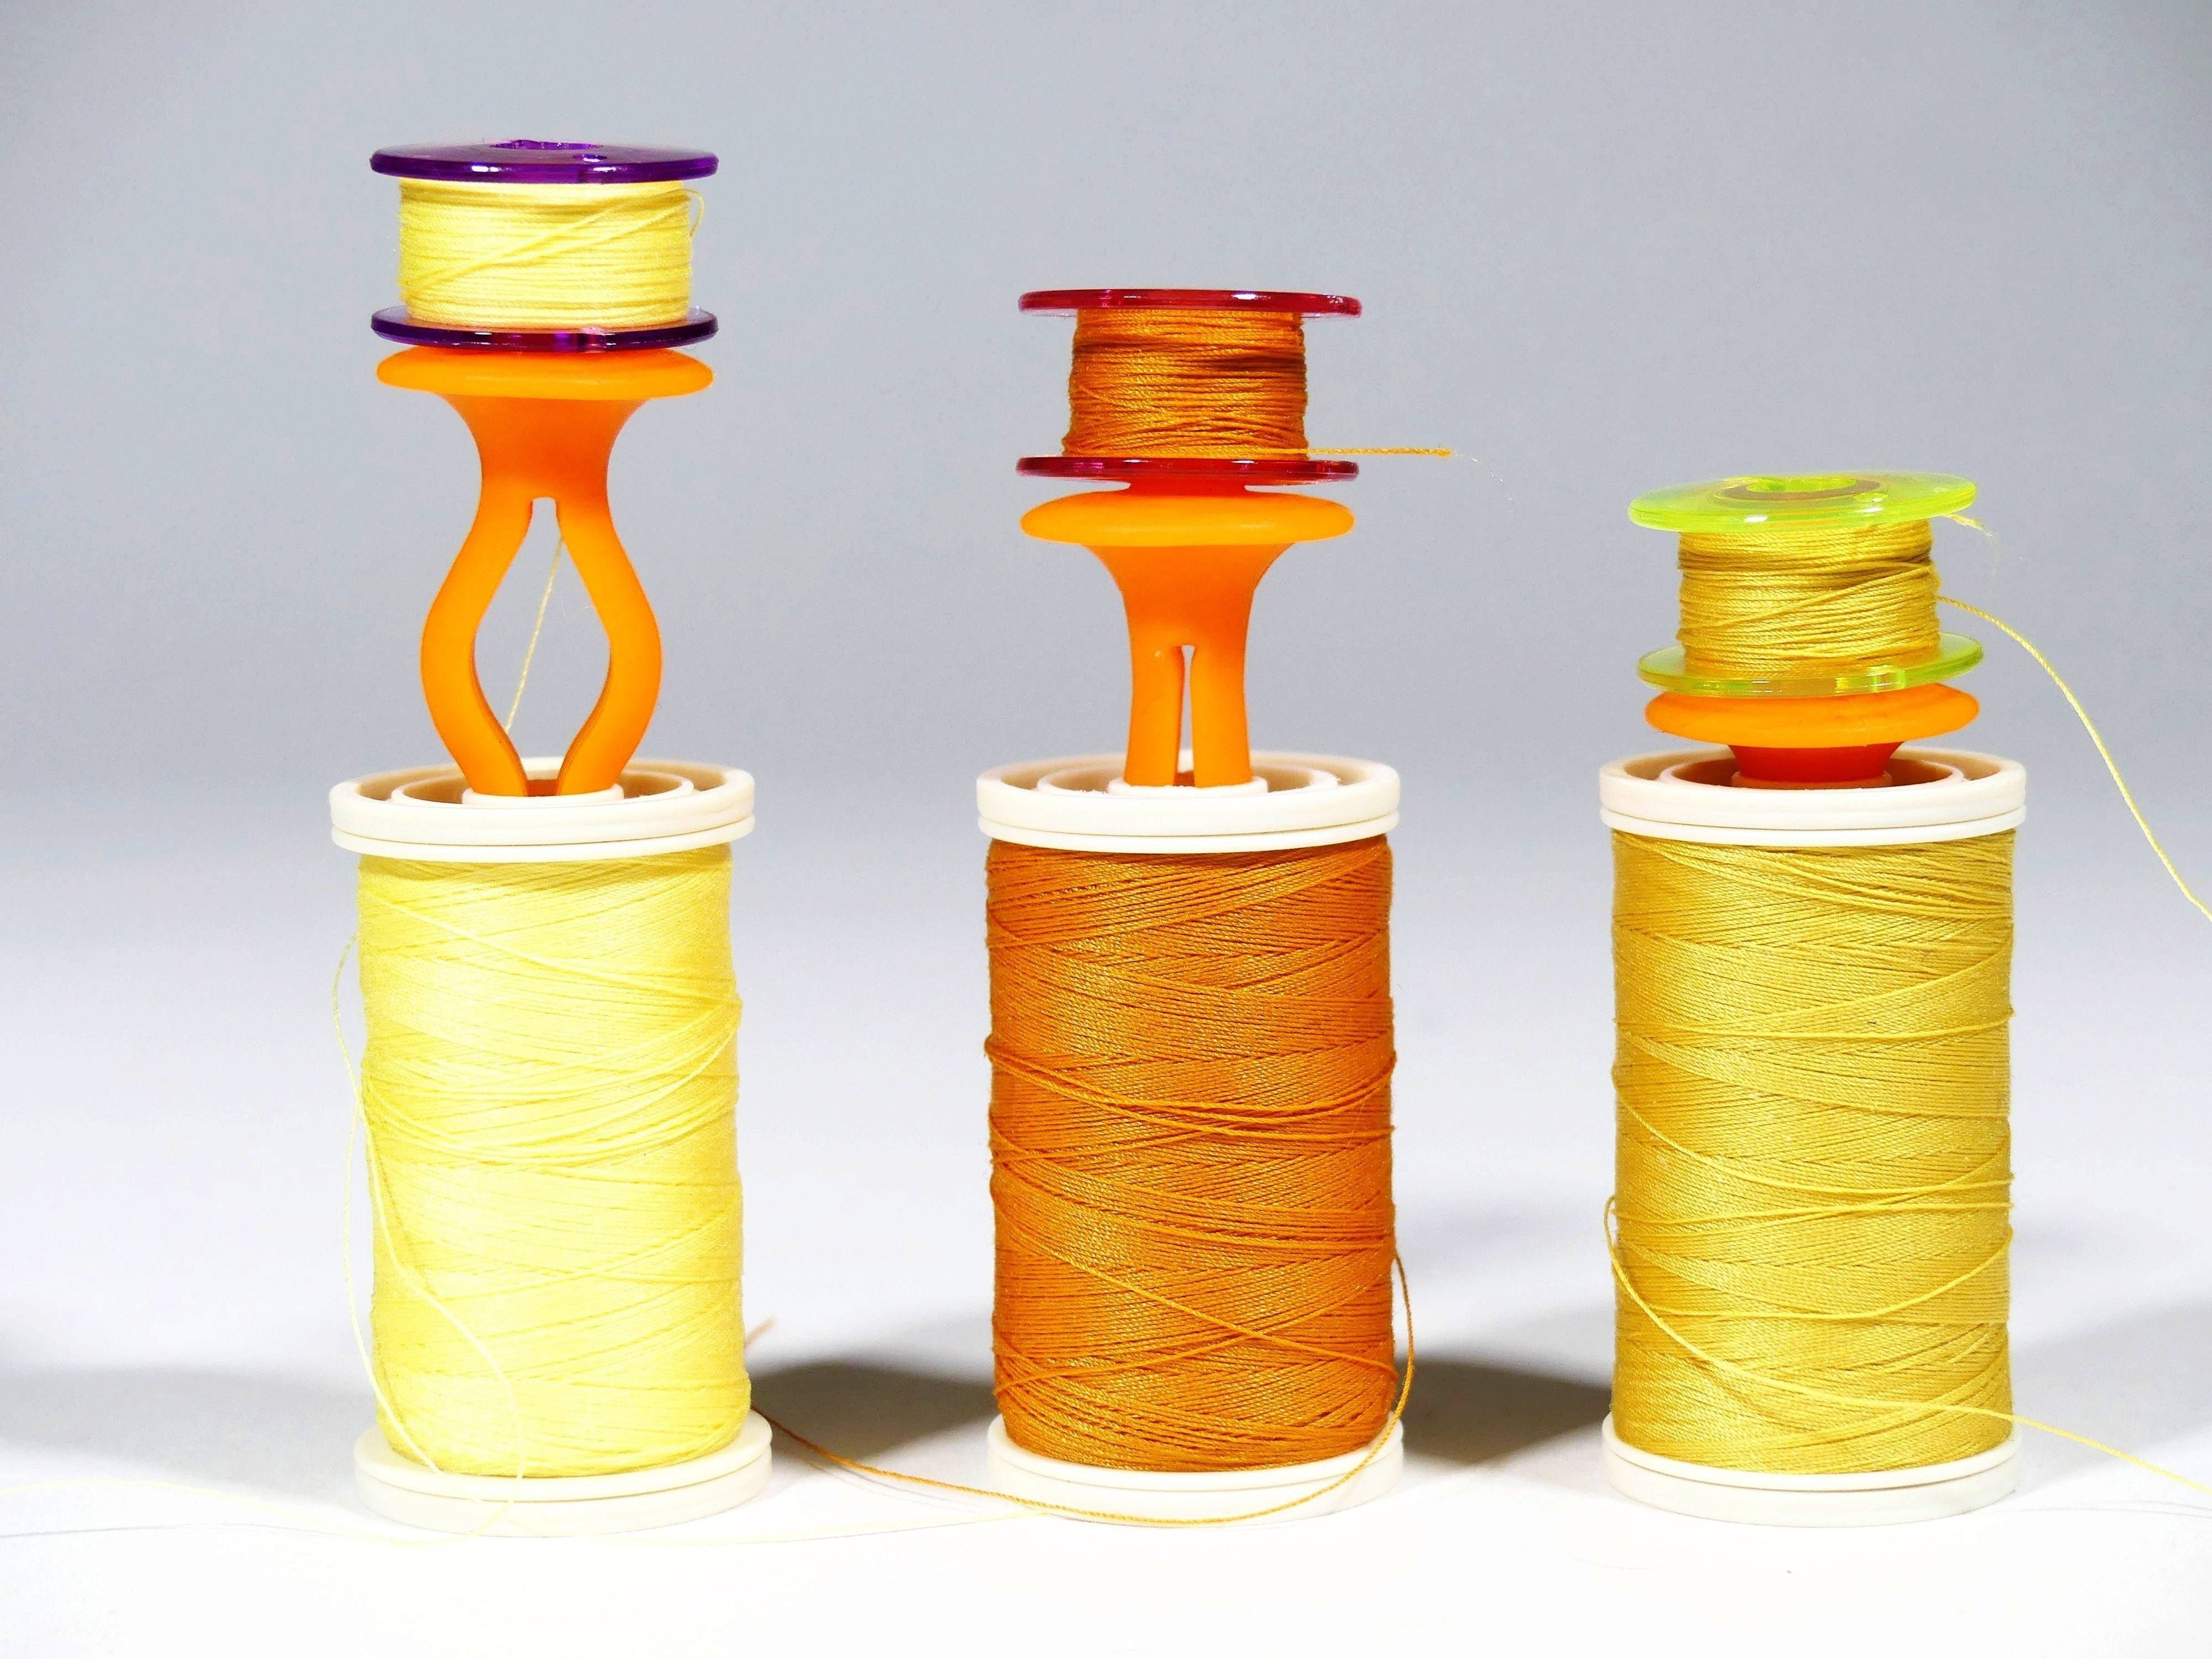 Bobbin Matched with Spool